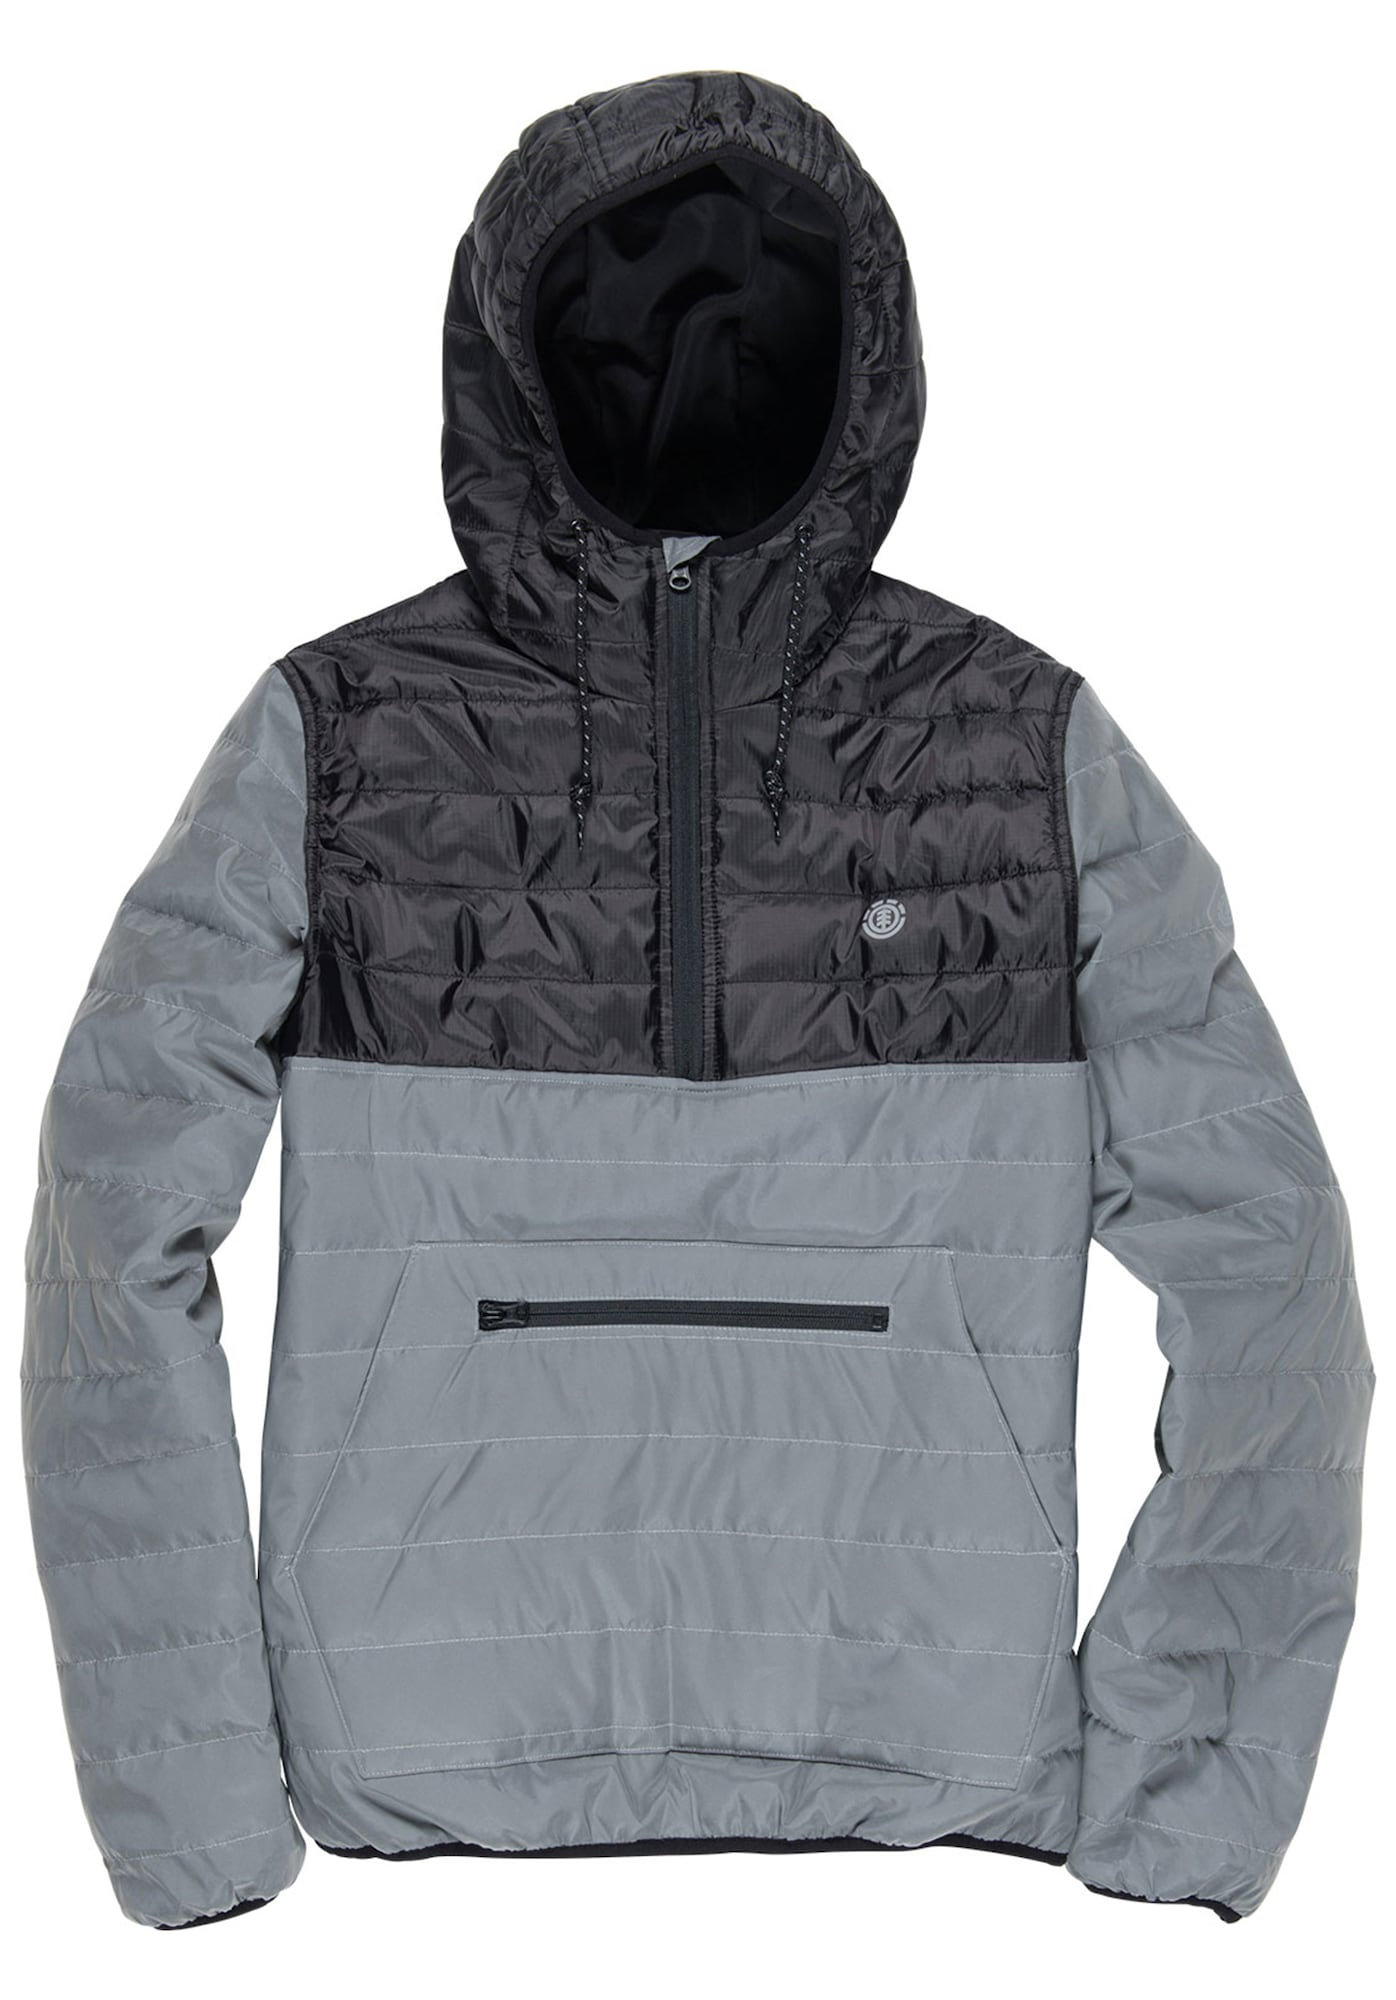 Alder Puff Pop Twill Outdoorweste | Sportbekleidung > Sportwesten > Outdoorwesten | Grau - Dunkelgrau | Element